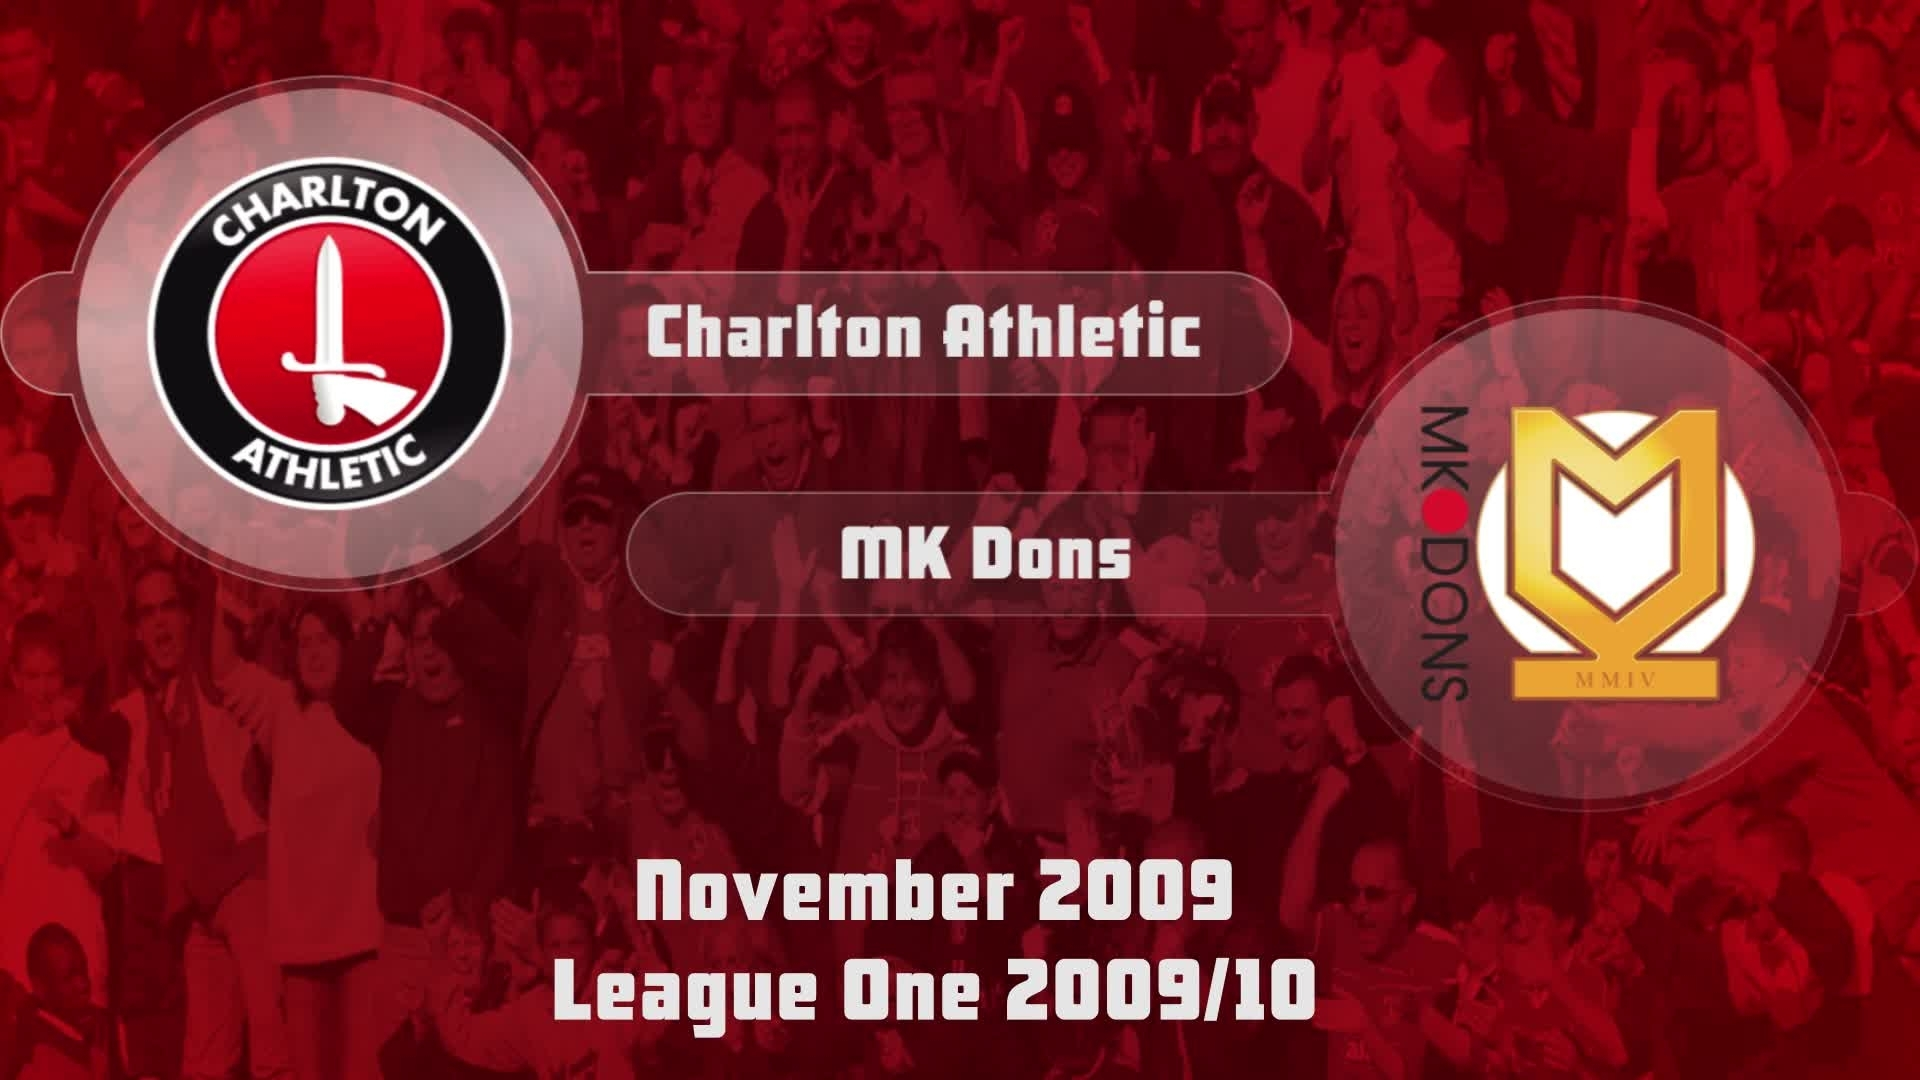 20 HIGHLIGHTS | Charlton 5 MK Dons 1 (Nov 2009)